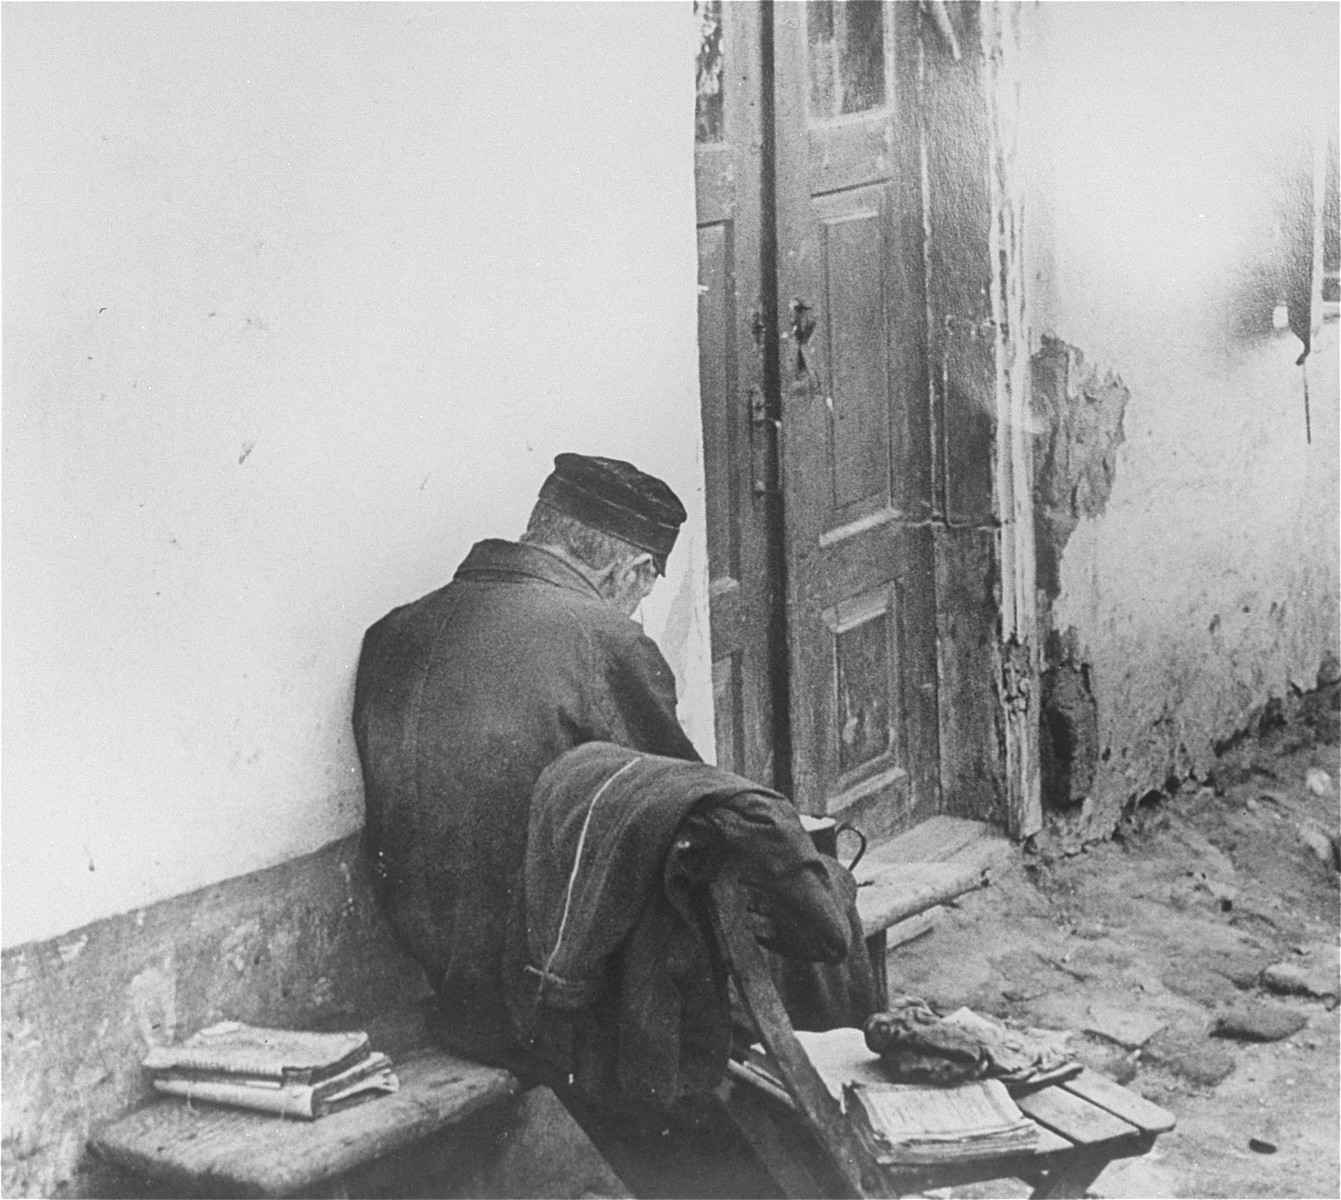 An elderly Jew sitting at an entrance to a house.